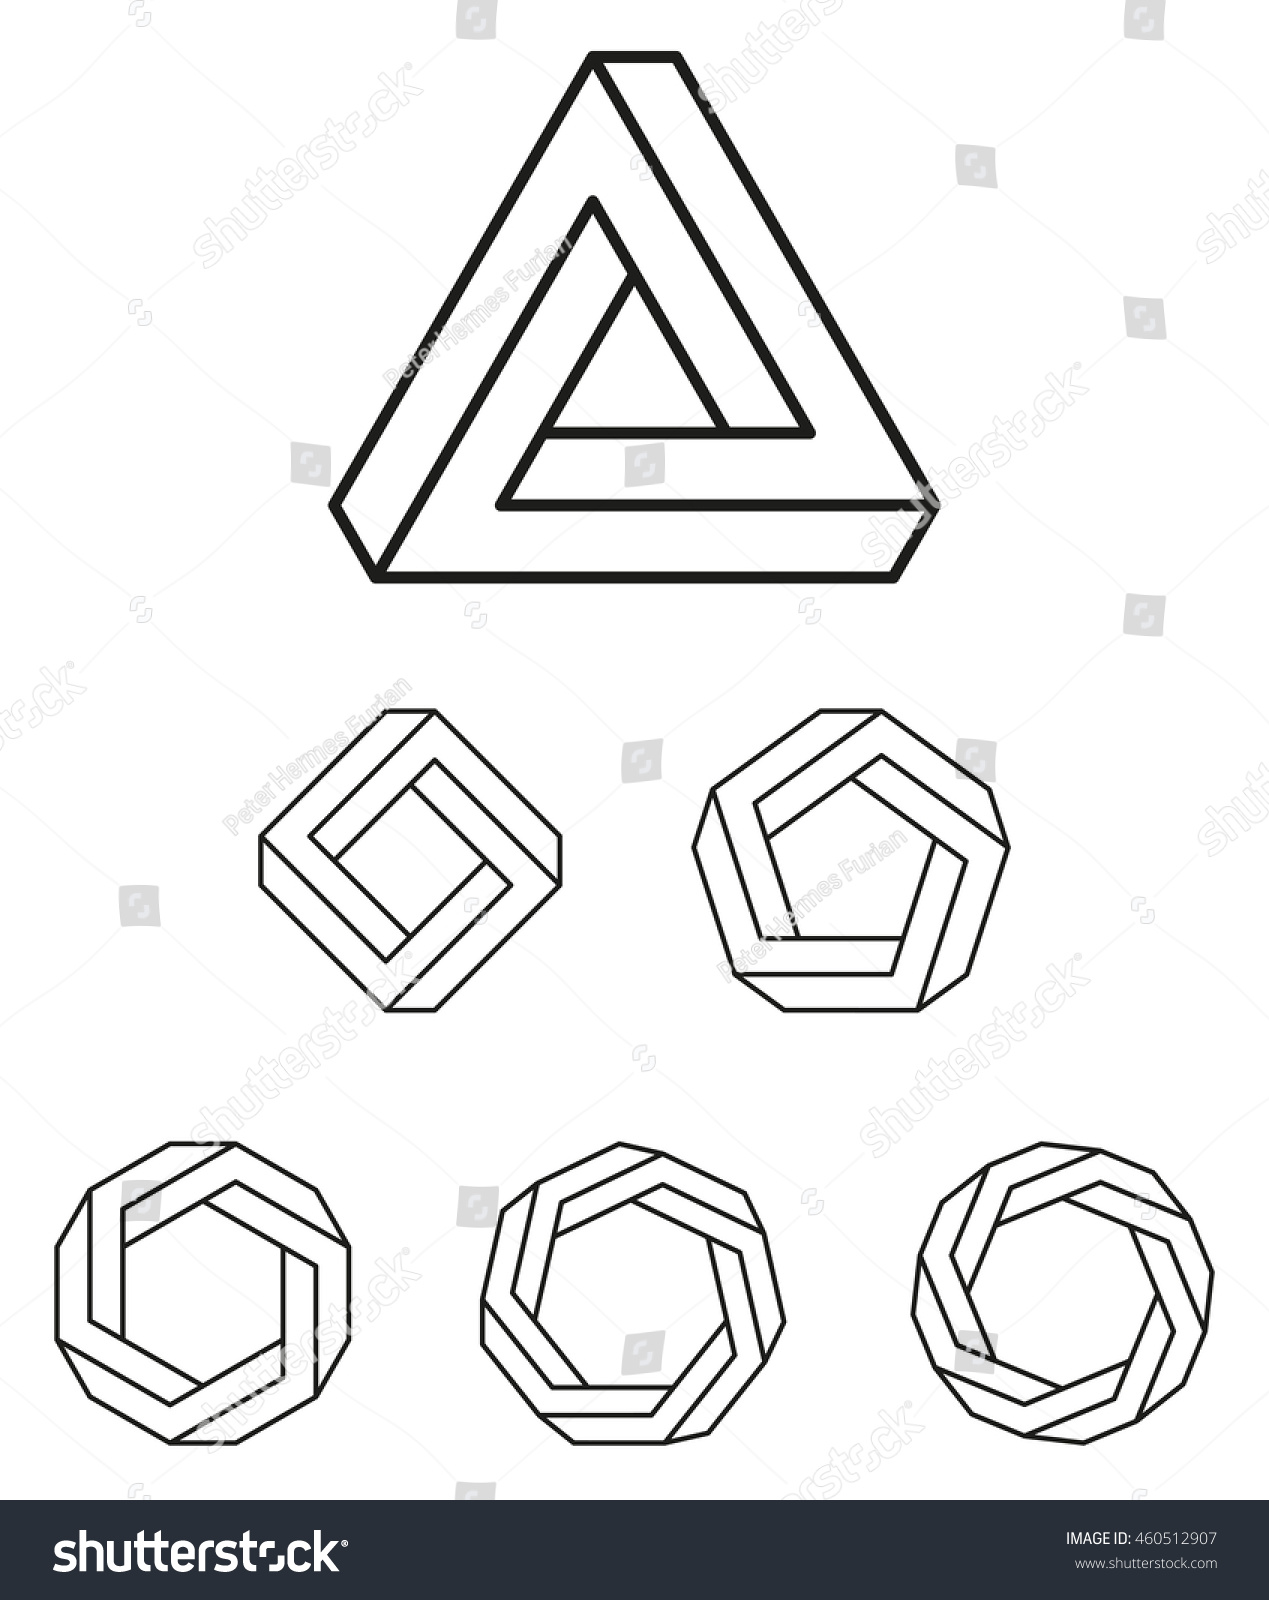 Penrose Triangle And Polygons Outline The Penrose Tribar, An Impossible  Object, Appears To